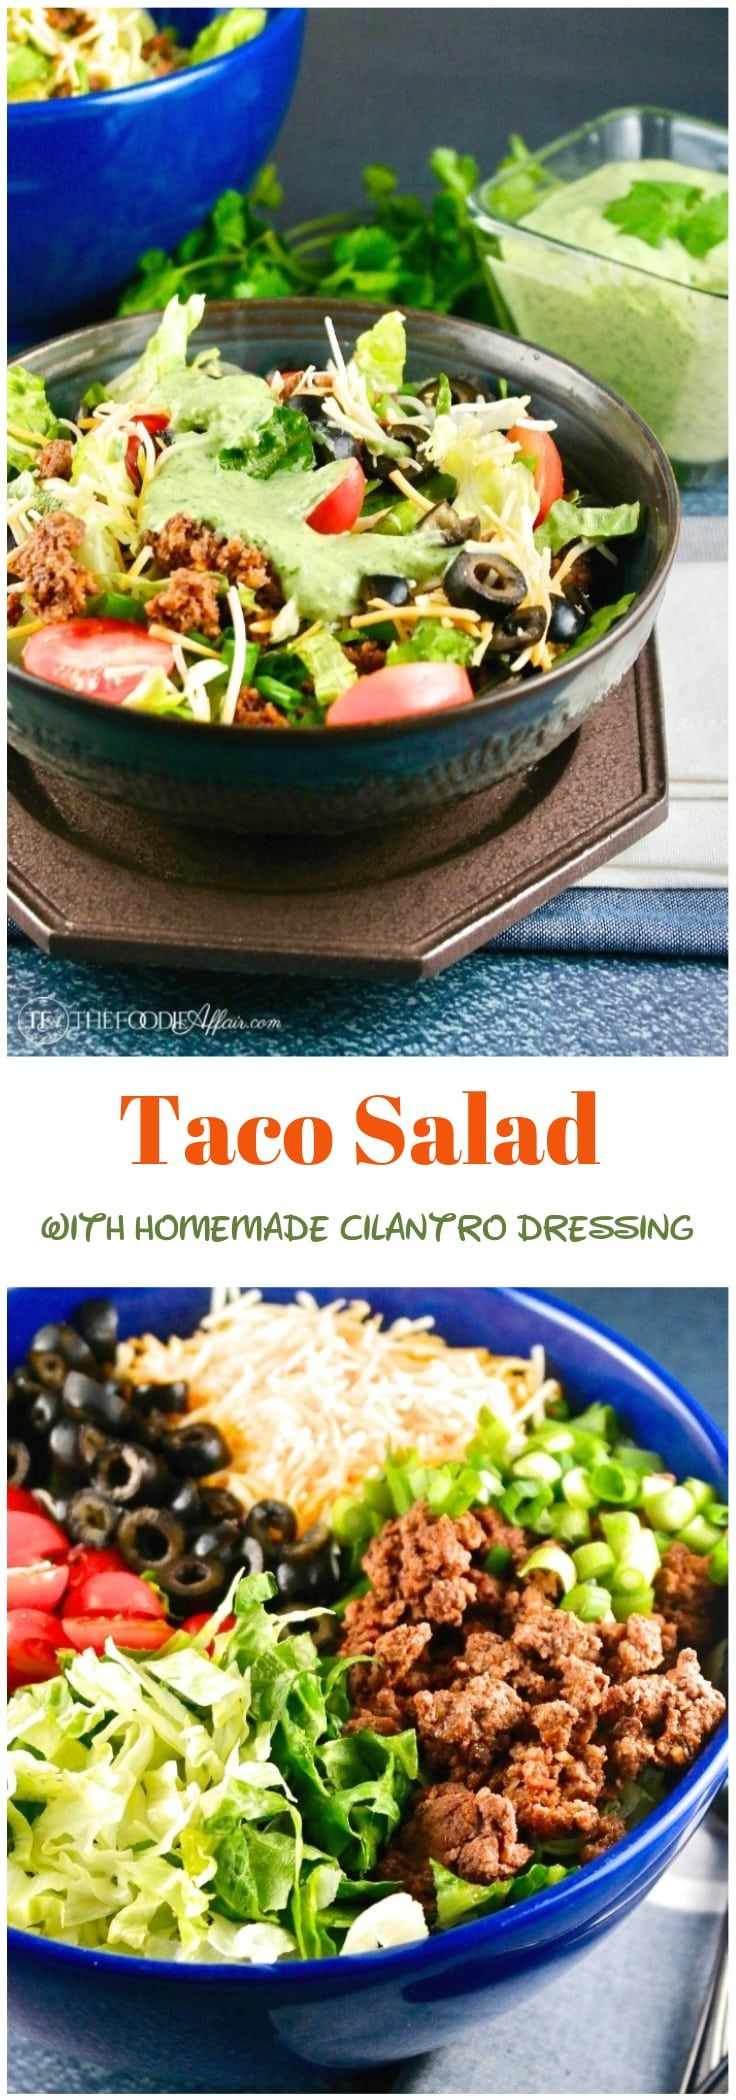 Taco salad with seasoned ground beef and all your favorite toppings served with an easy homemade creamy cilantro dressing. Enjoy as a main meal at your next Fiesta!